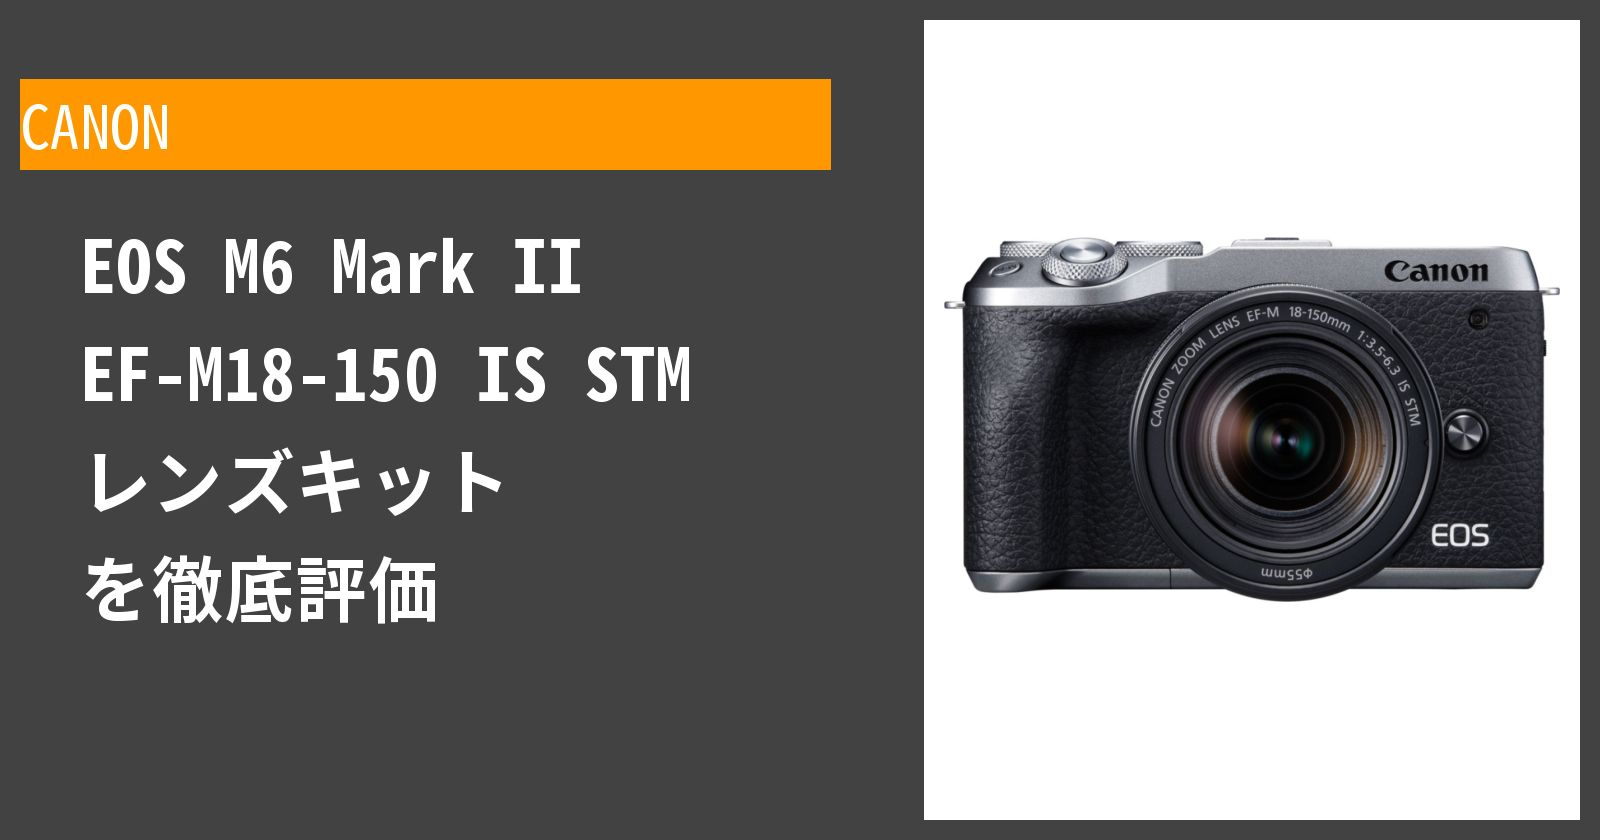 EOS M6 Mark II EF-M18-150 IS STM レンズキットを徹底評価